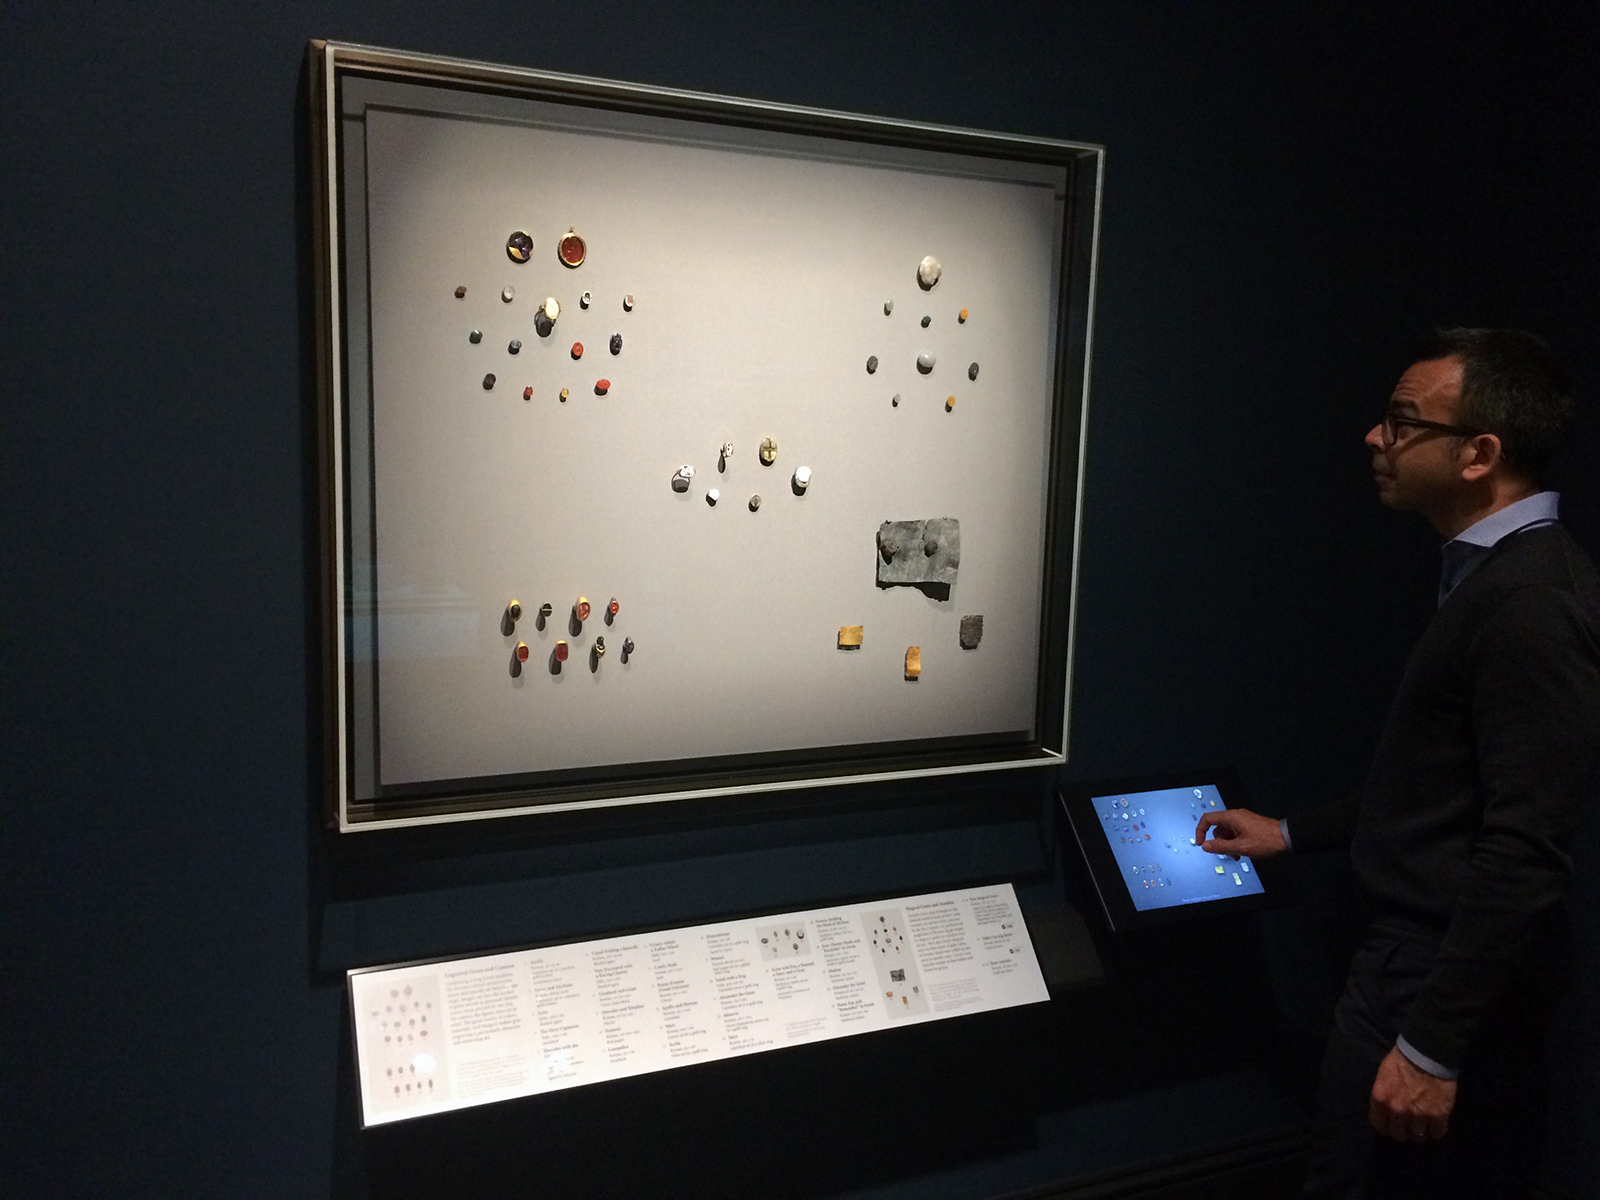 A dramatically lit showcase of gems and small metal treasures hands on a wall. To the right, a man uses an iPad that allows visual zooming